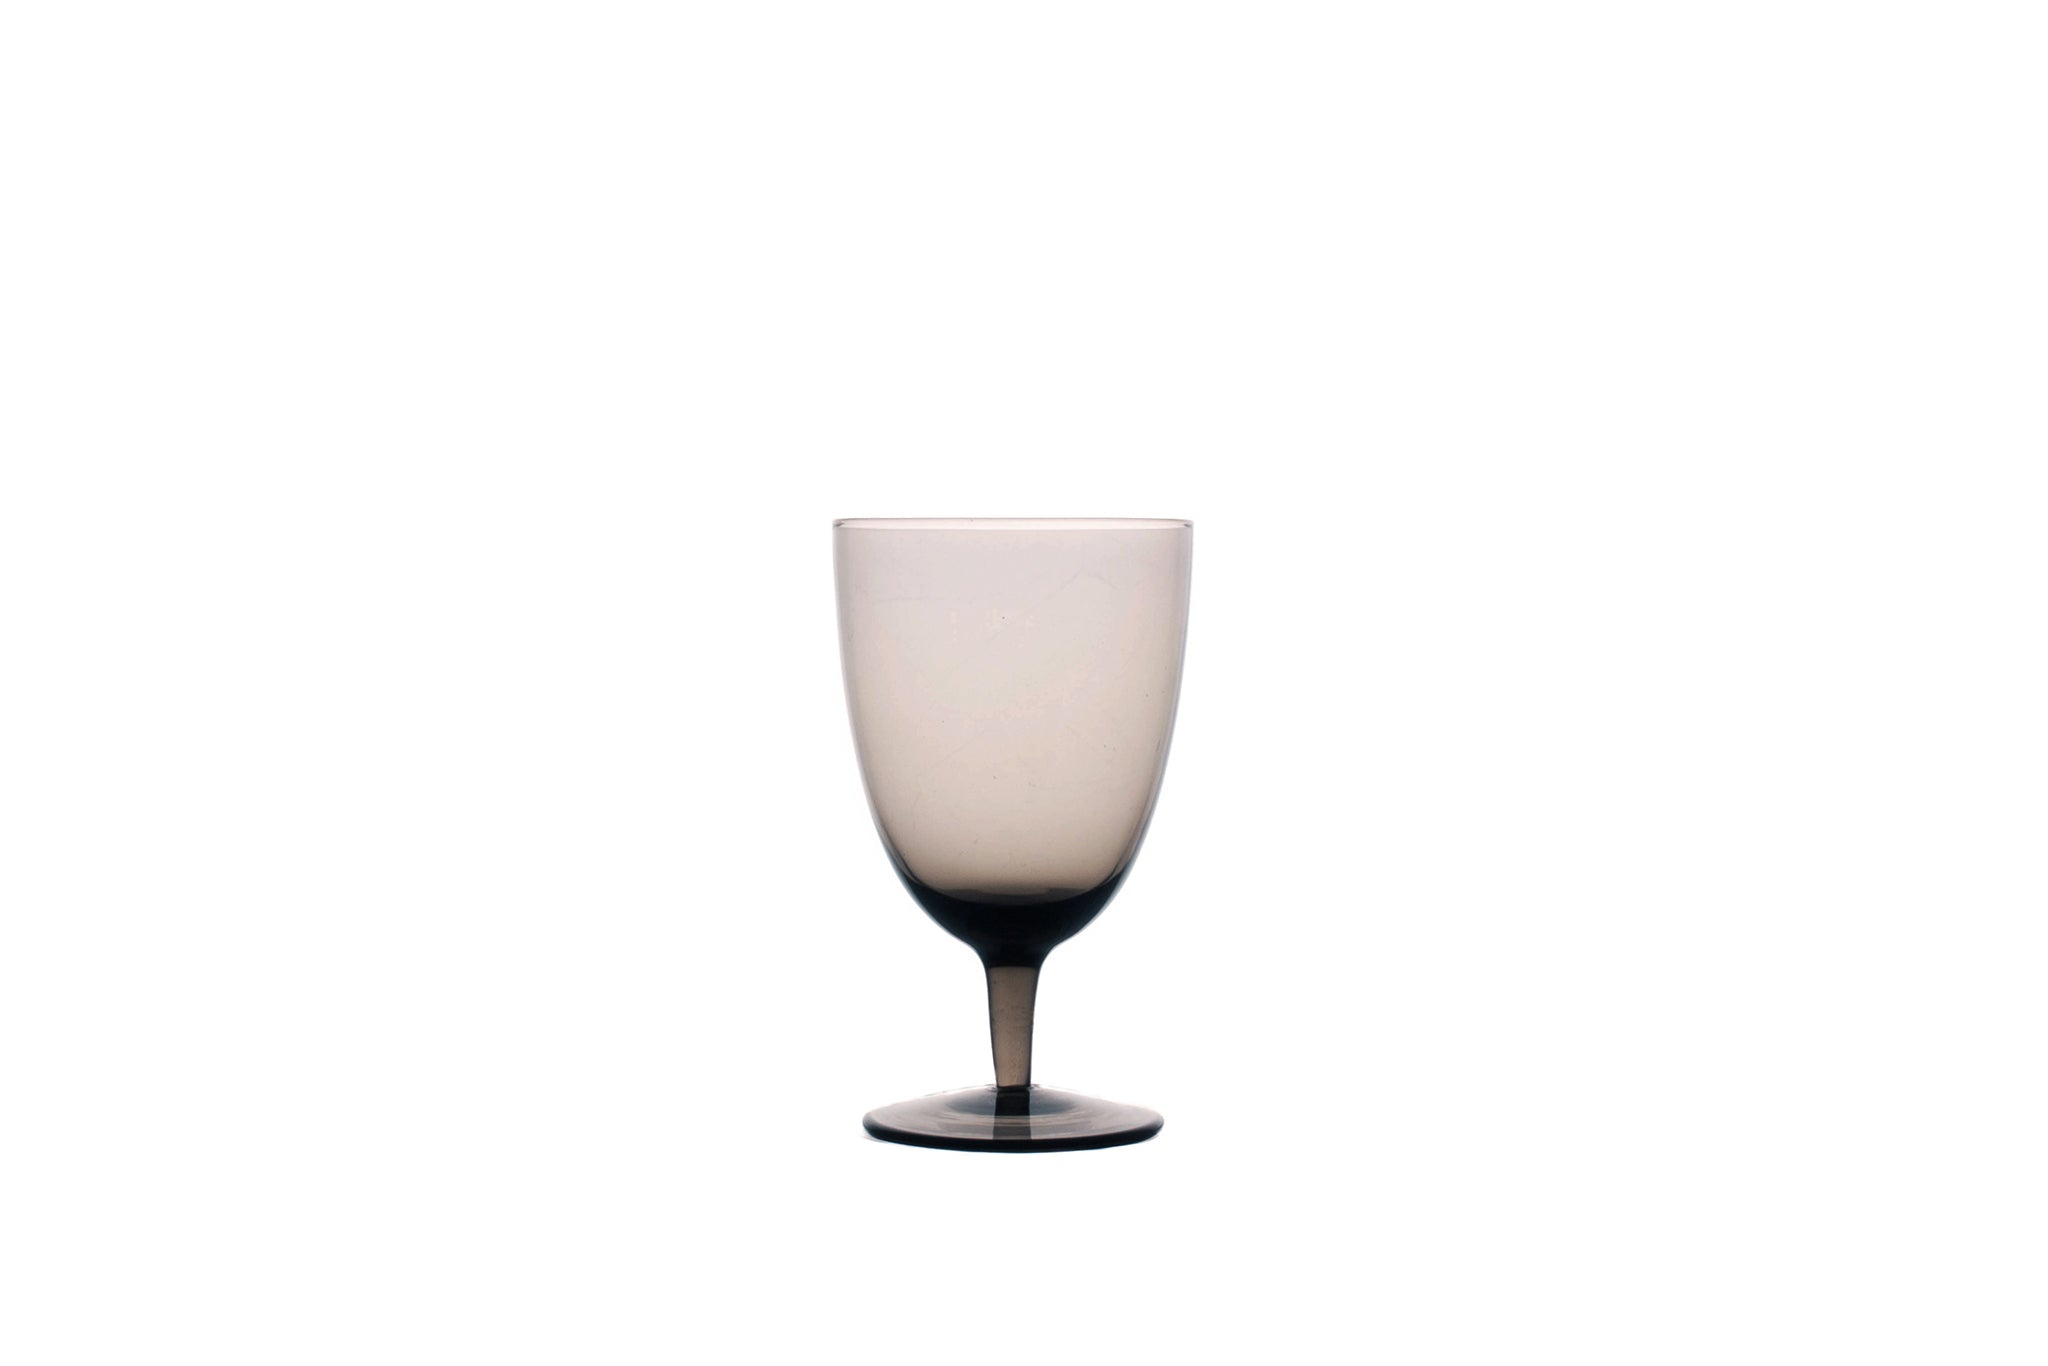 Amwell White Wine Glass in Smoke (Set of 4)